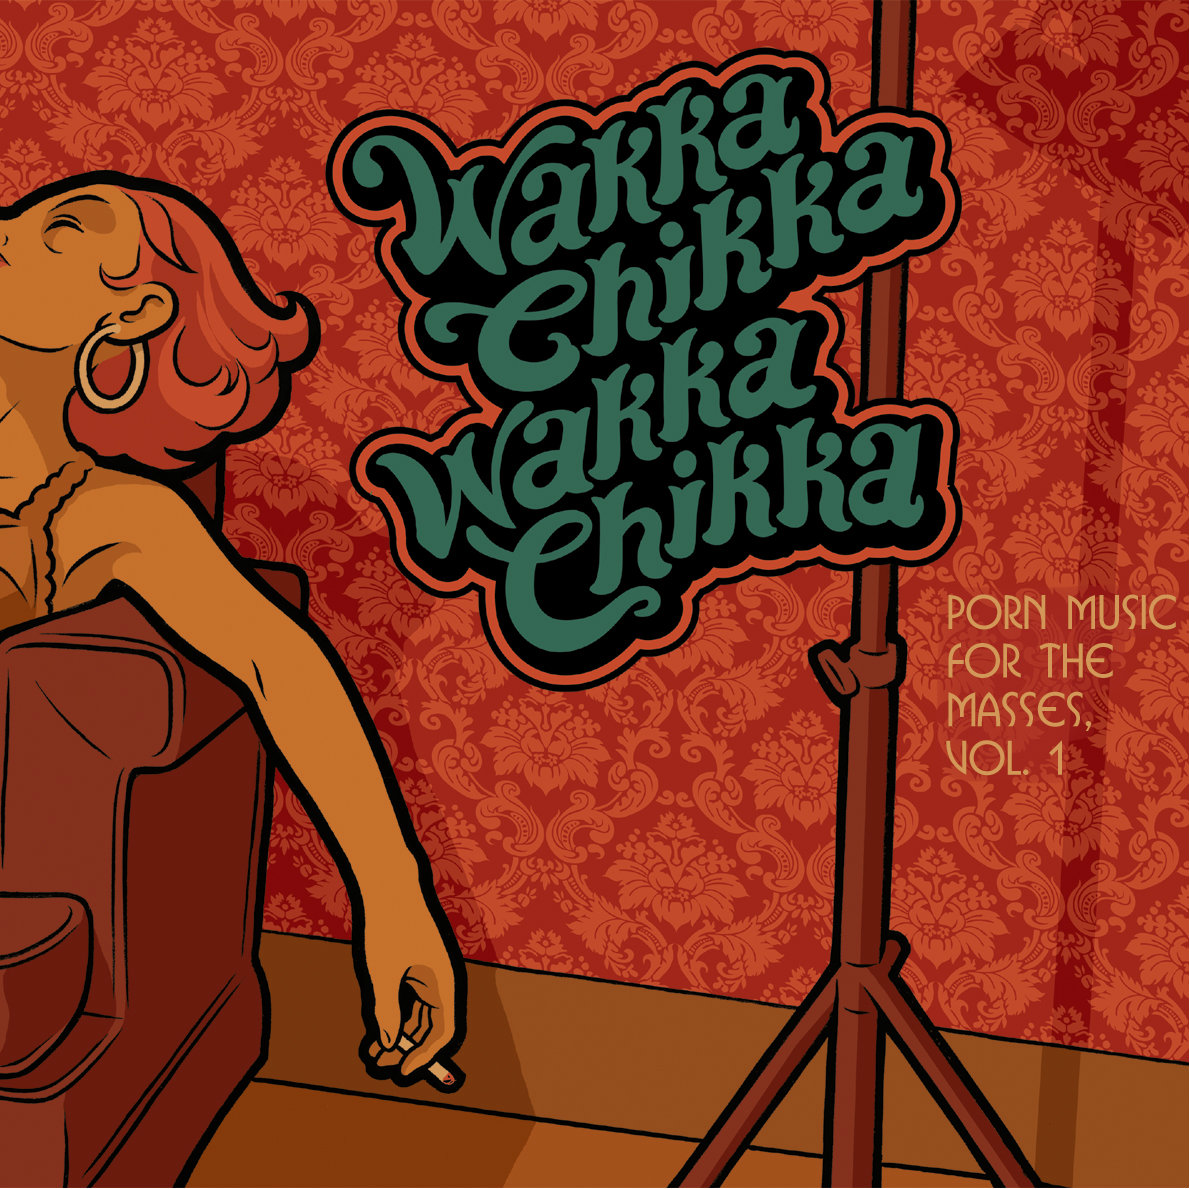 Wakka Chikka Wakka Chikka: Porn Music for the Masses Volume